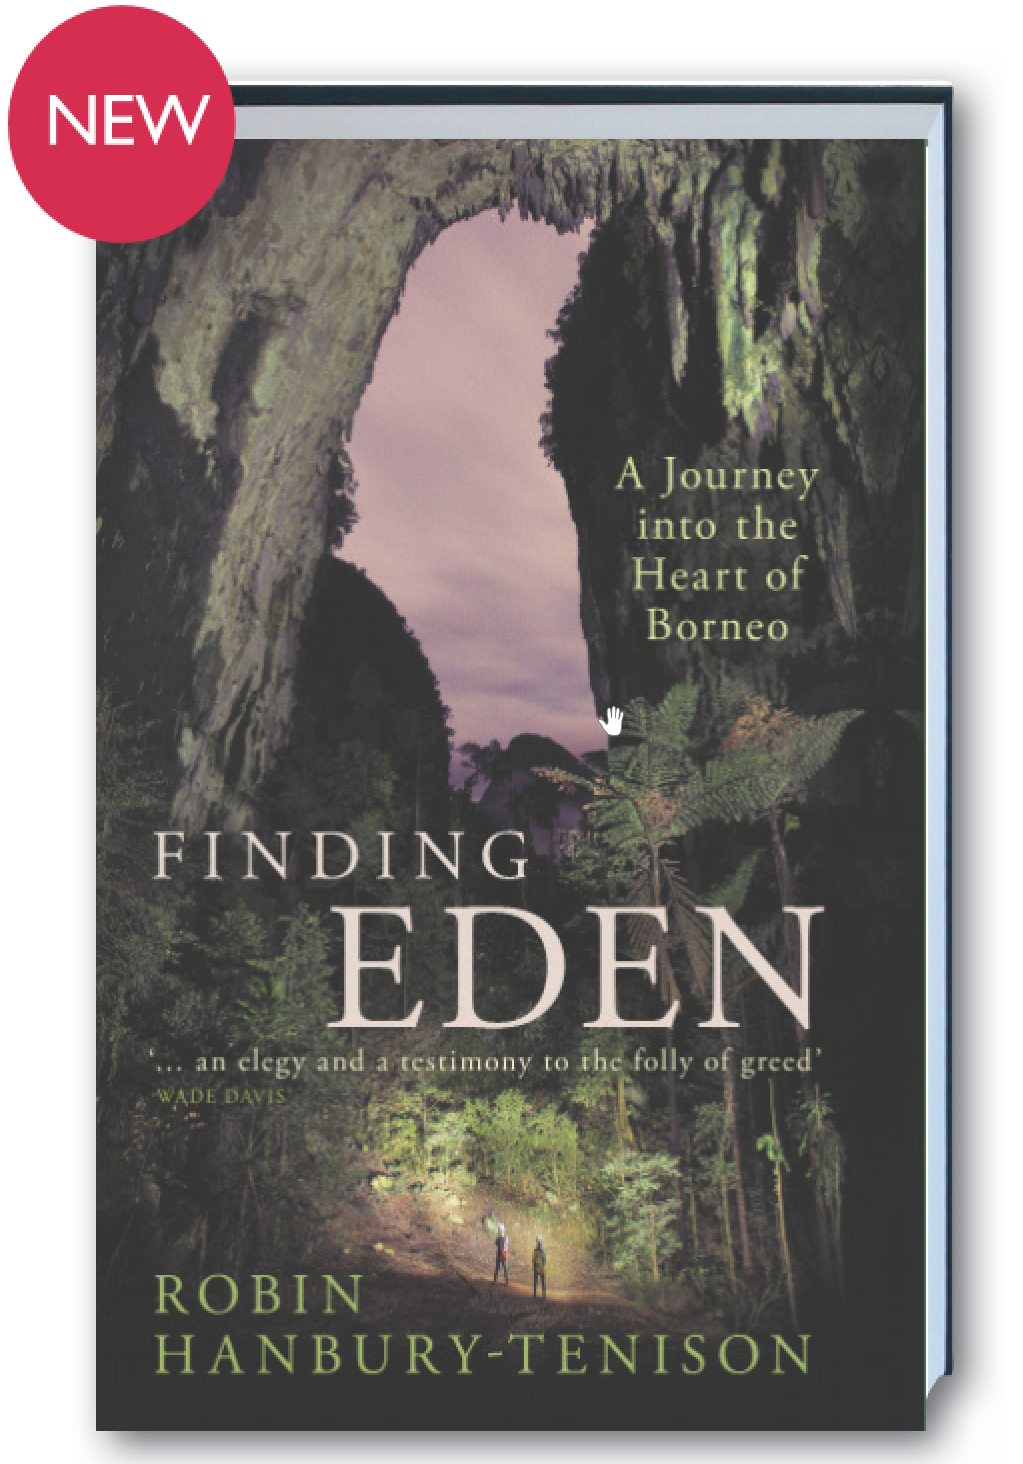 NEW BOOK FINDING EDEN